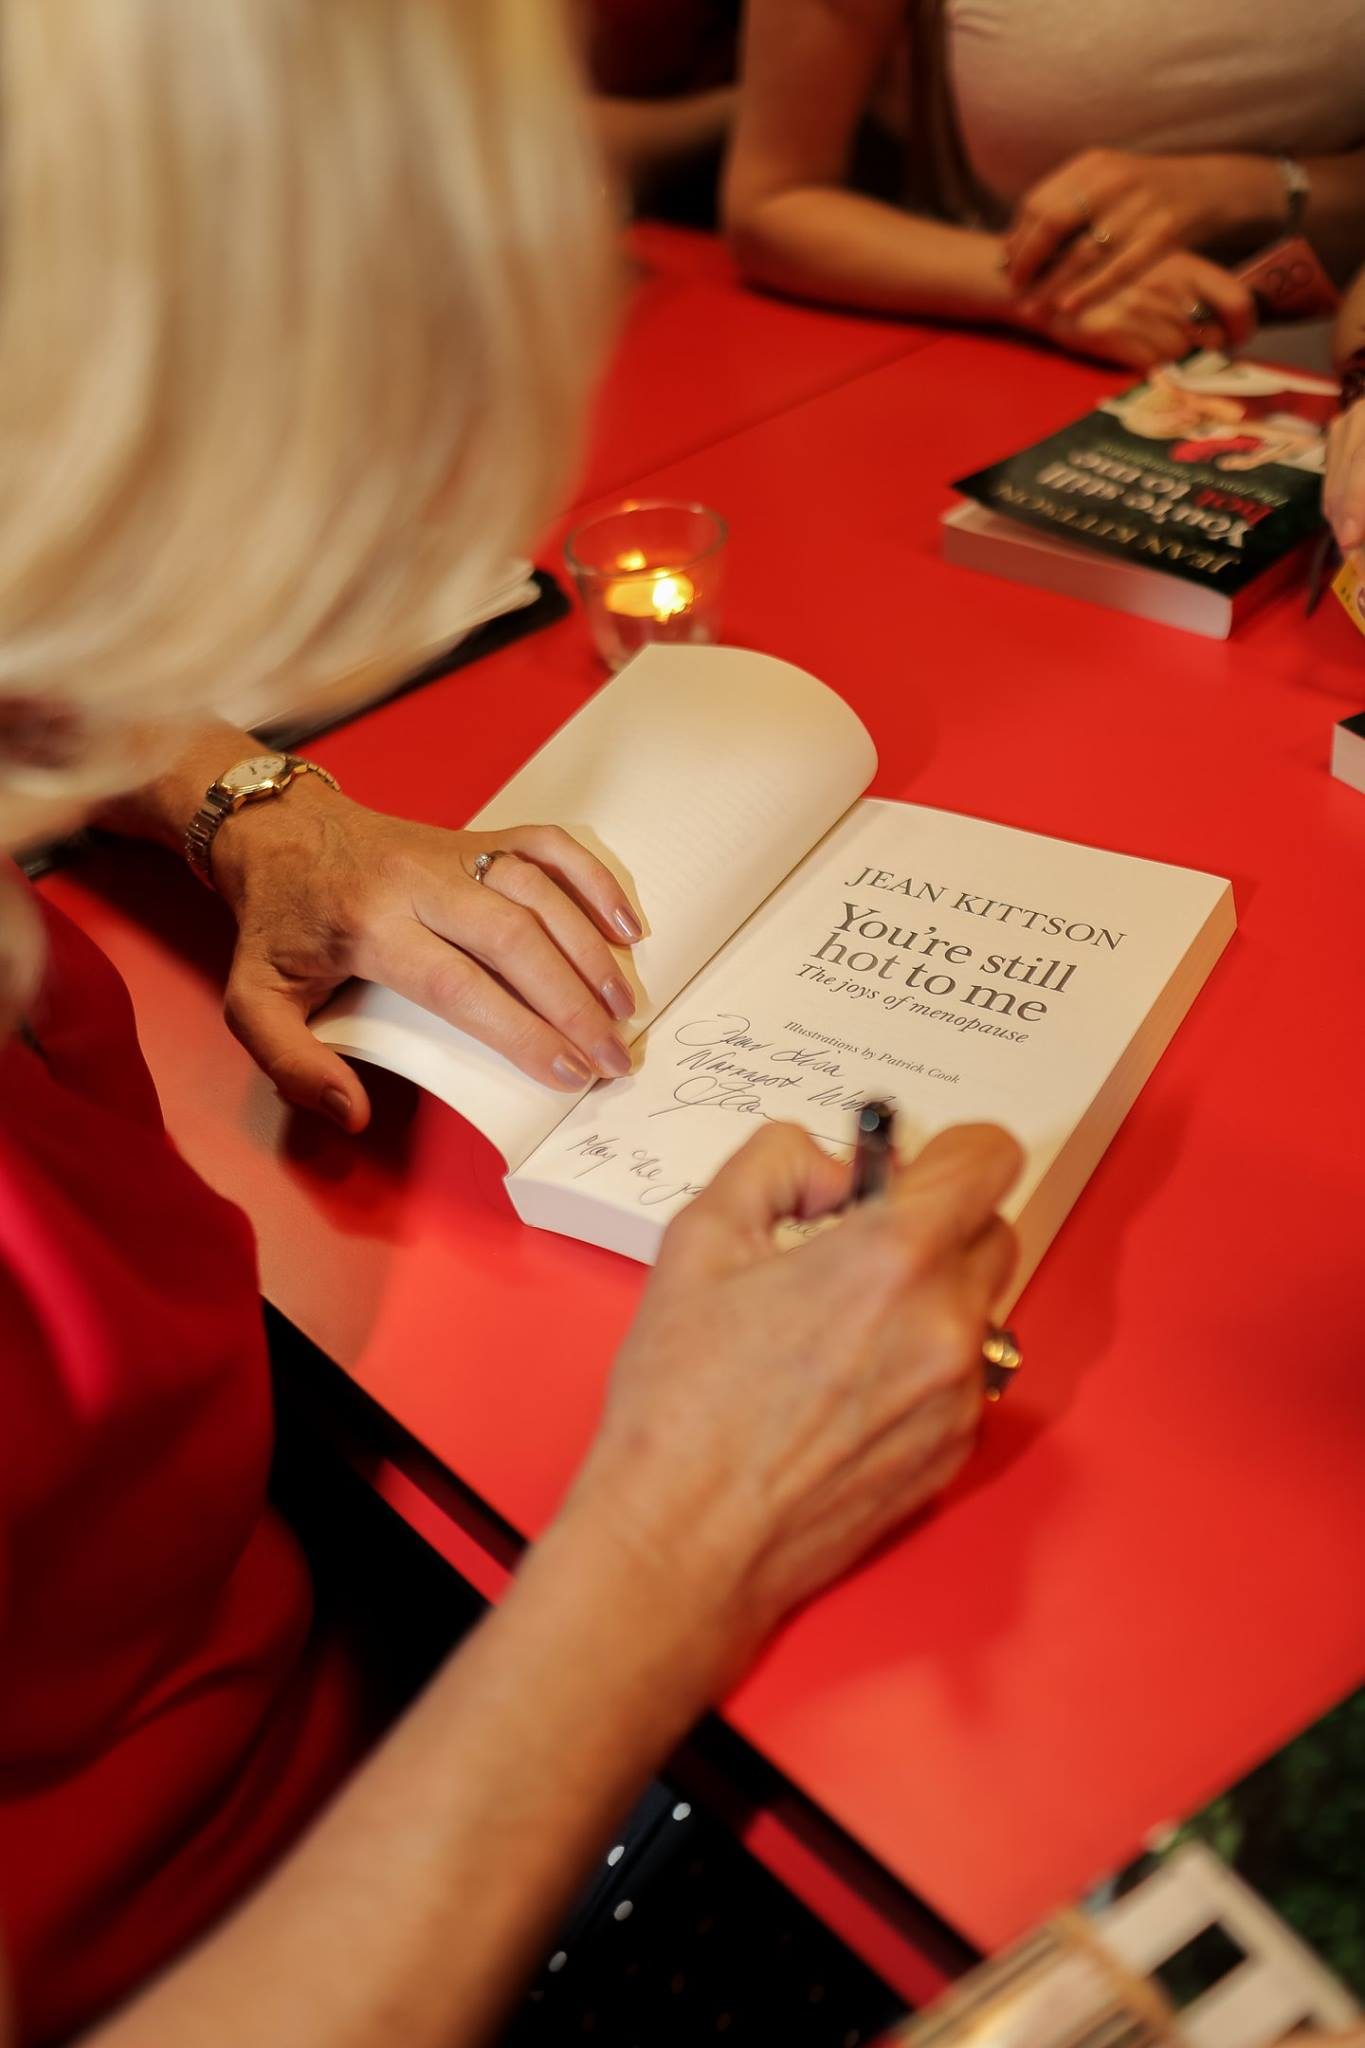 Jean Kittson, comedienne and author of 'You're Still Hot to Me', signing her amazing book about female hormones and menopause. A humorous yet well researched read, worth buying for any woman with hormones (and their partners)!